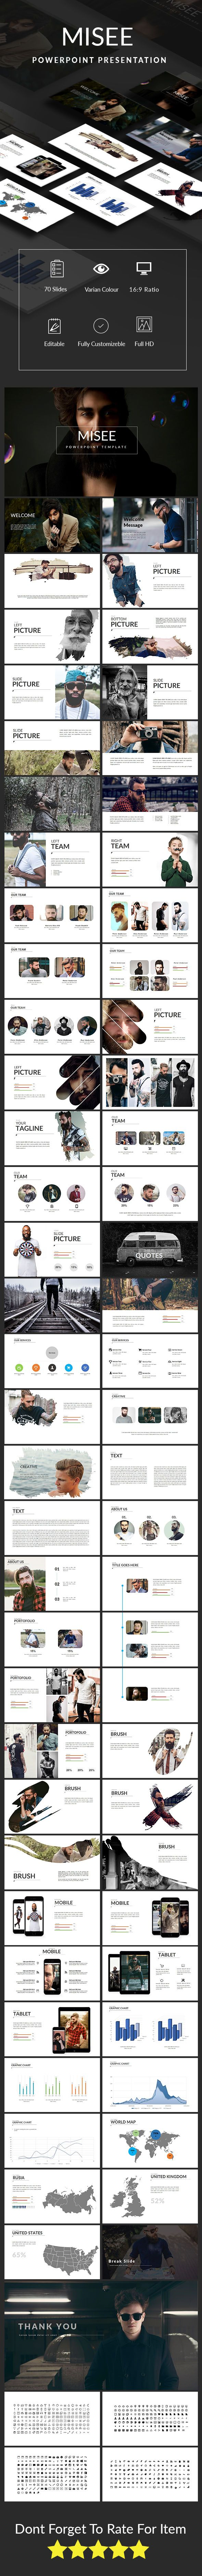 344 best powerpoint images on pinterest | business infographics, Presentation templates